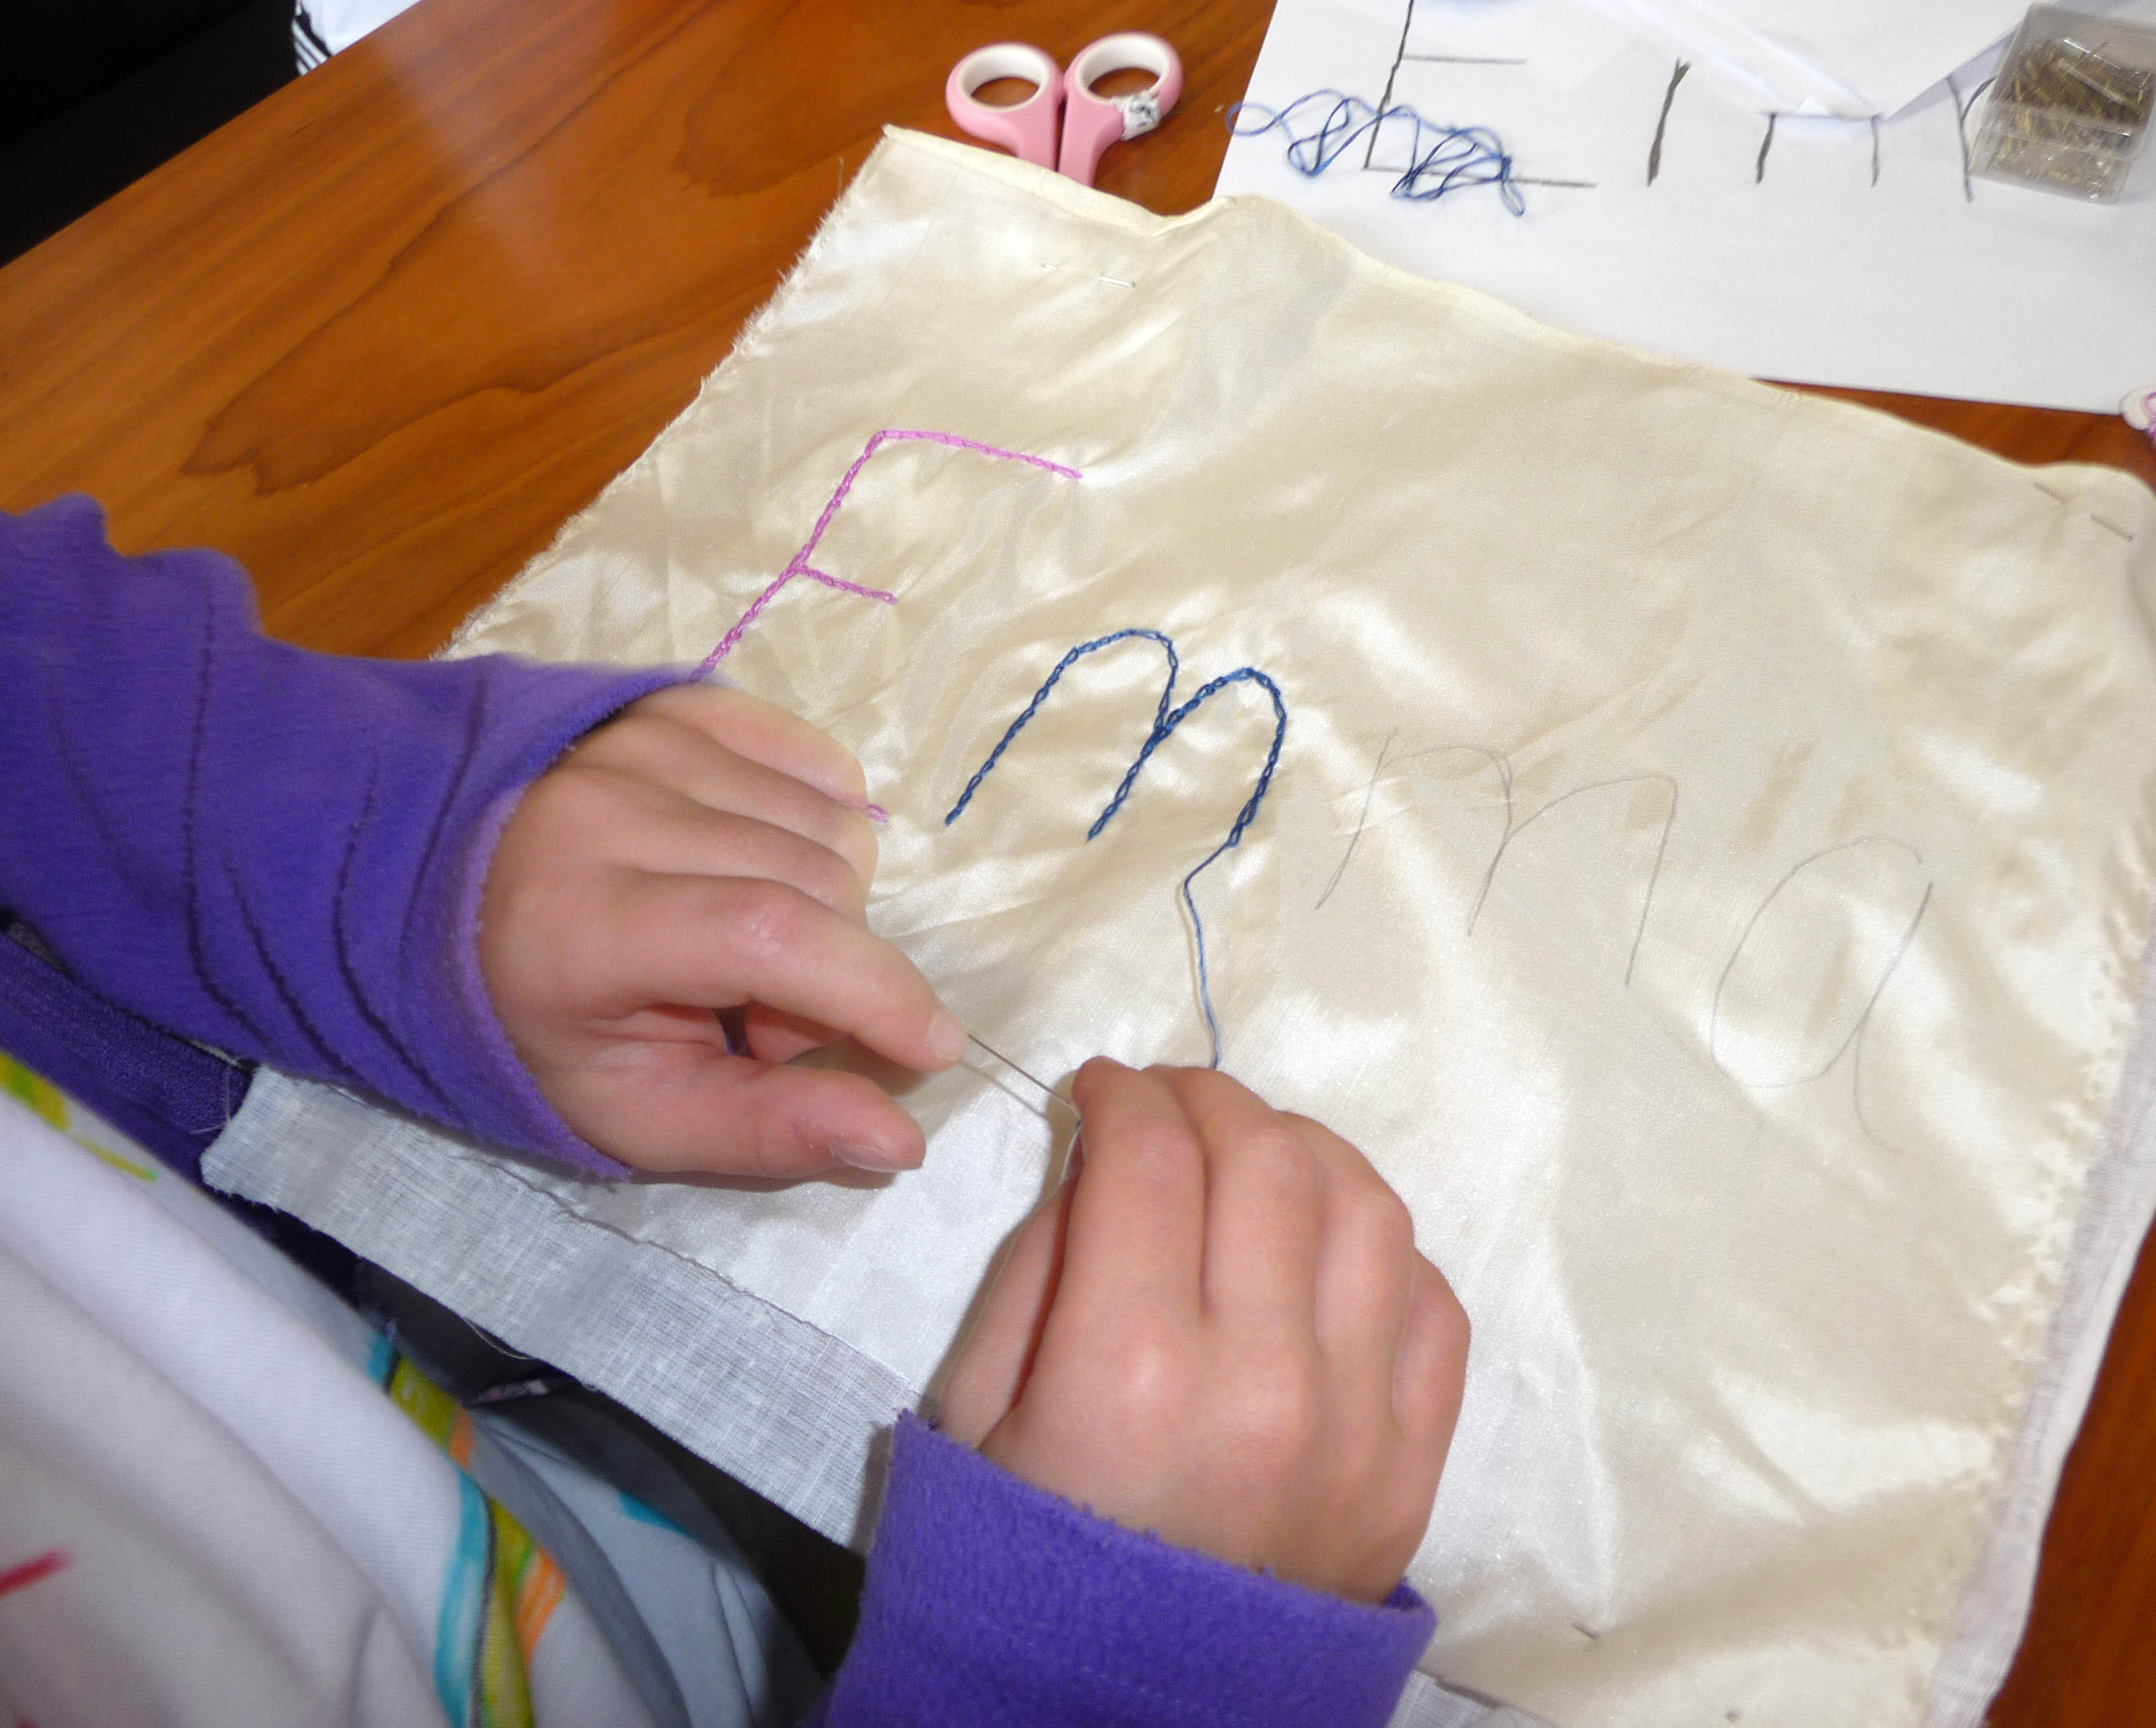 Emma is embroidering her name with chain stitch